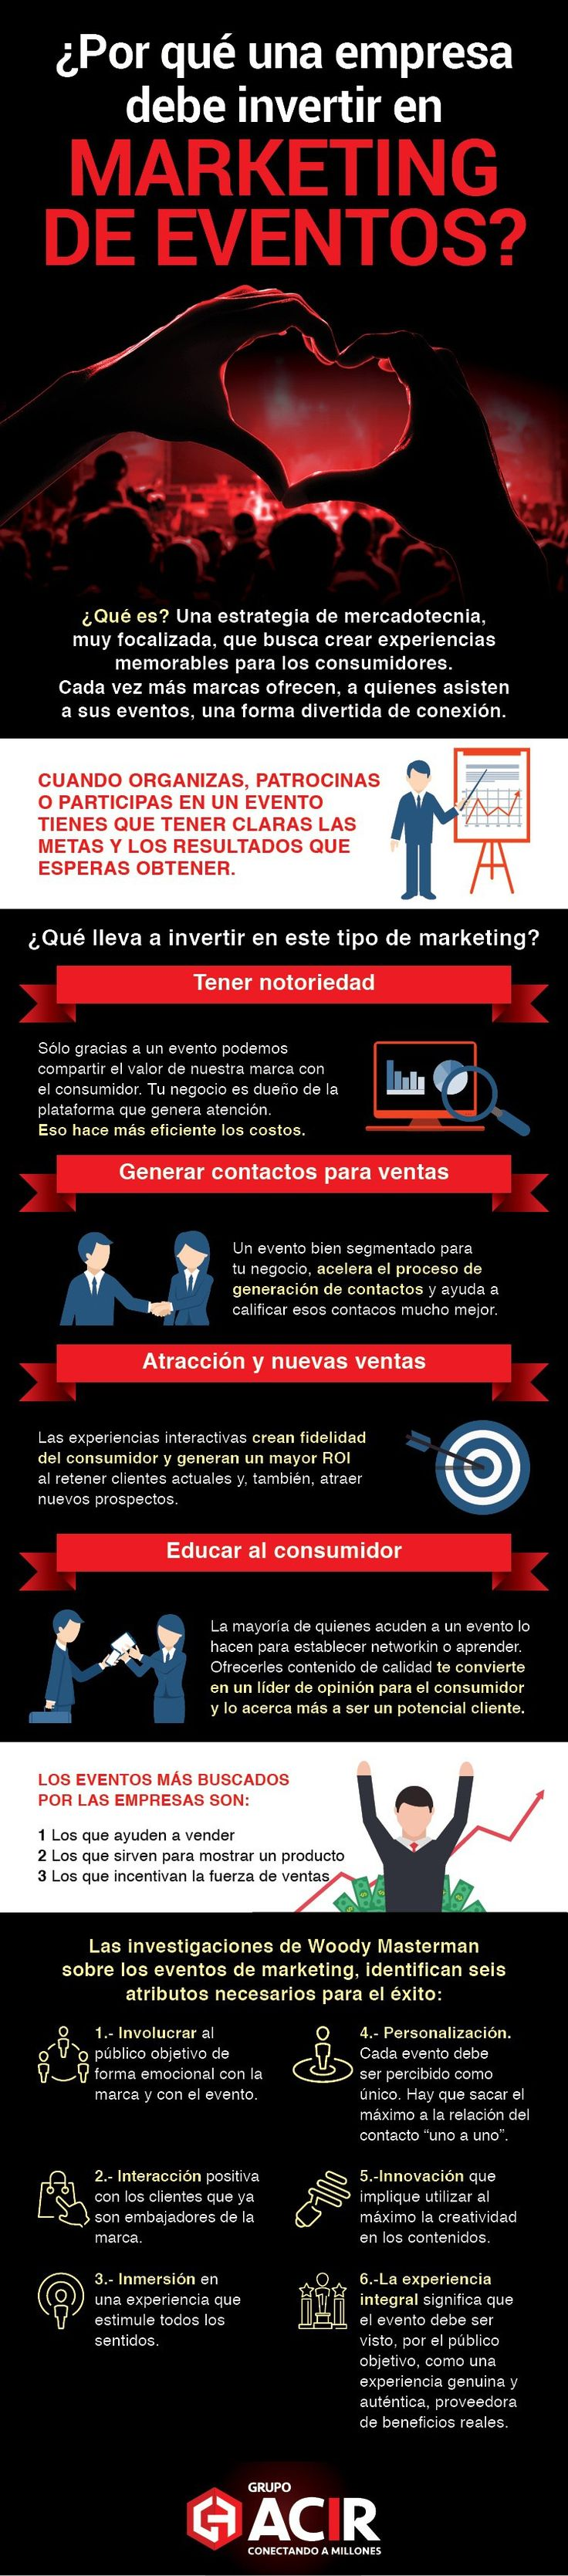 Por qué una empresa debe de invertir en Marketing de Eventos #infografia